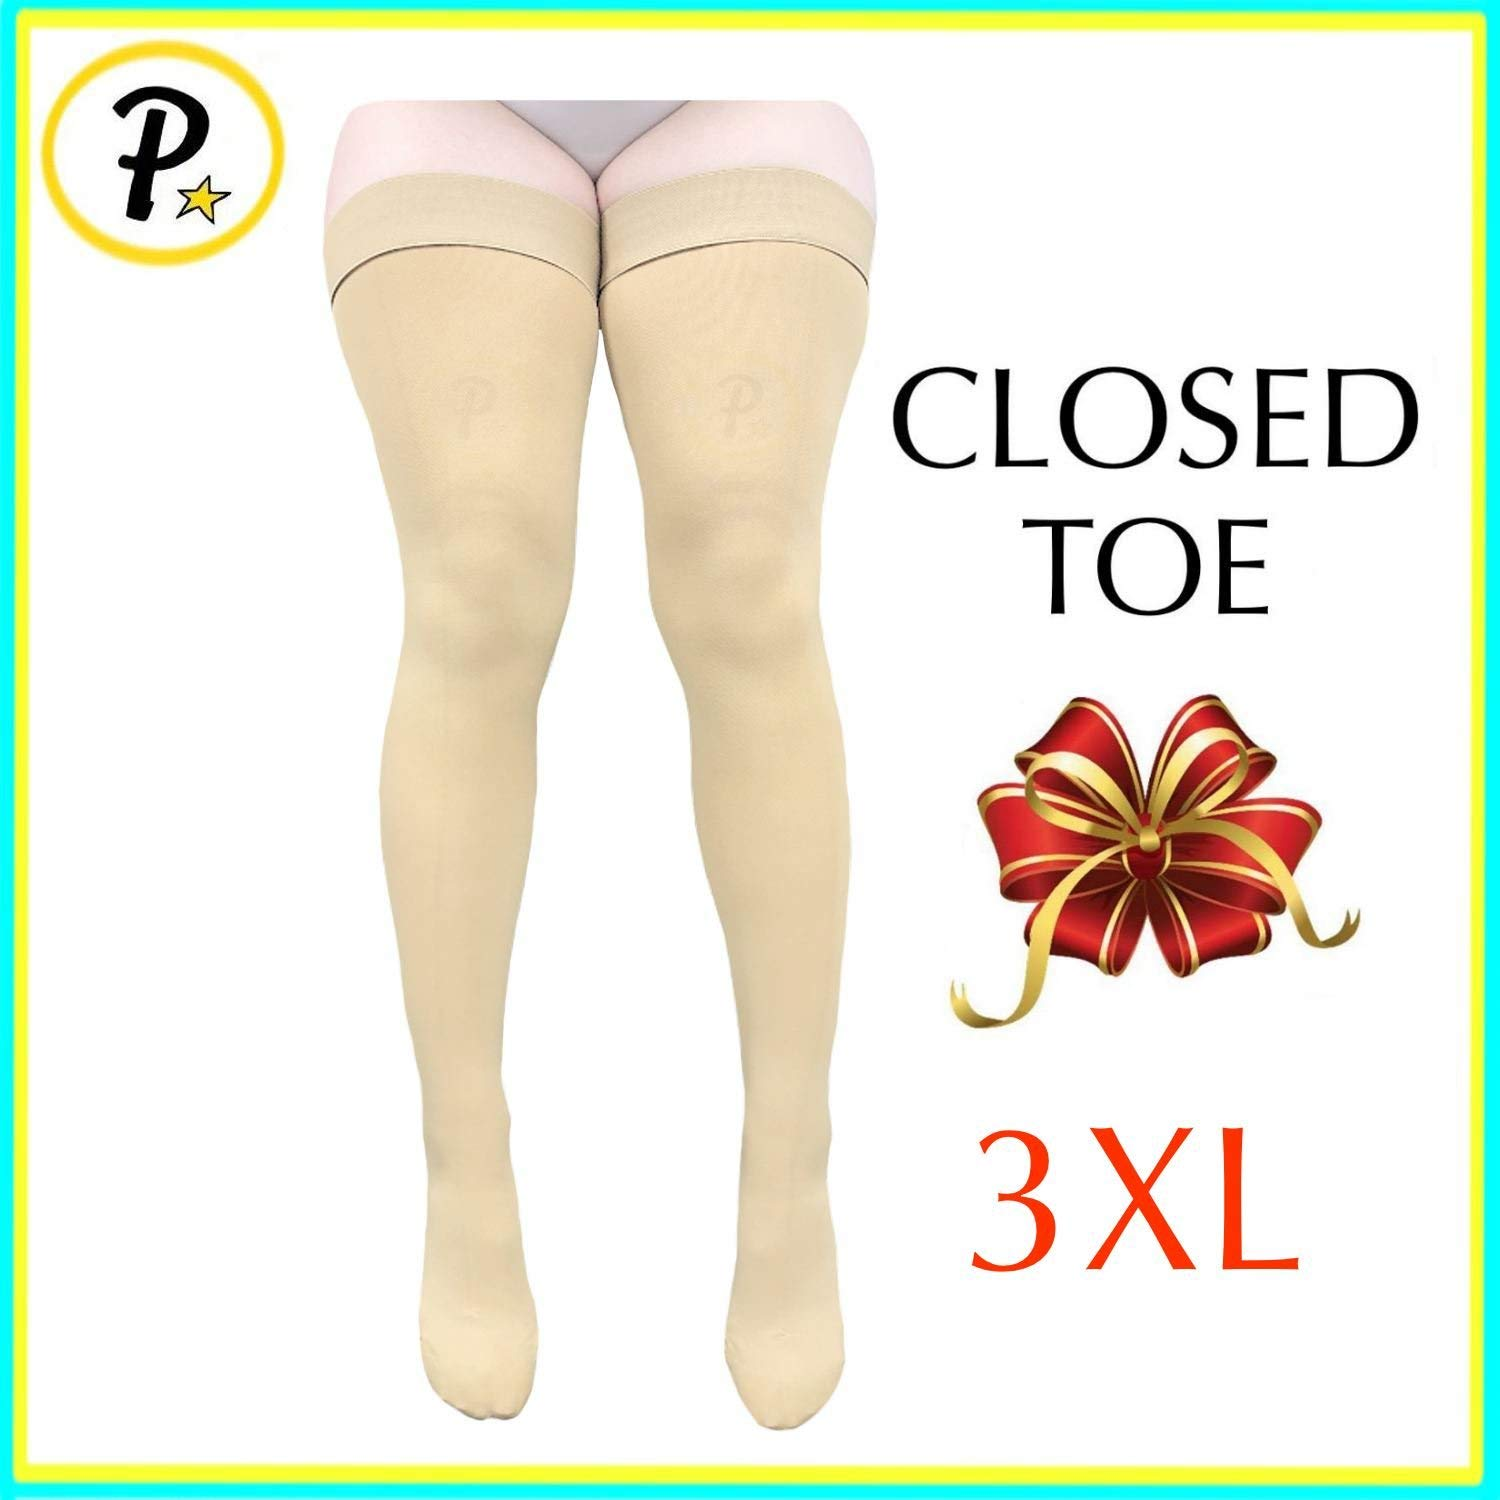 69dbc76d00 Get Quotations · Presadee Thigh High Leg Full Length 20-30 mmHg Graduated  Compression Grade Stocking Swelling Fatigue